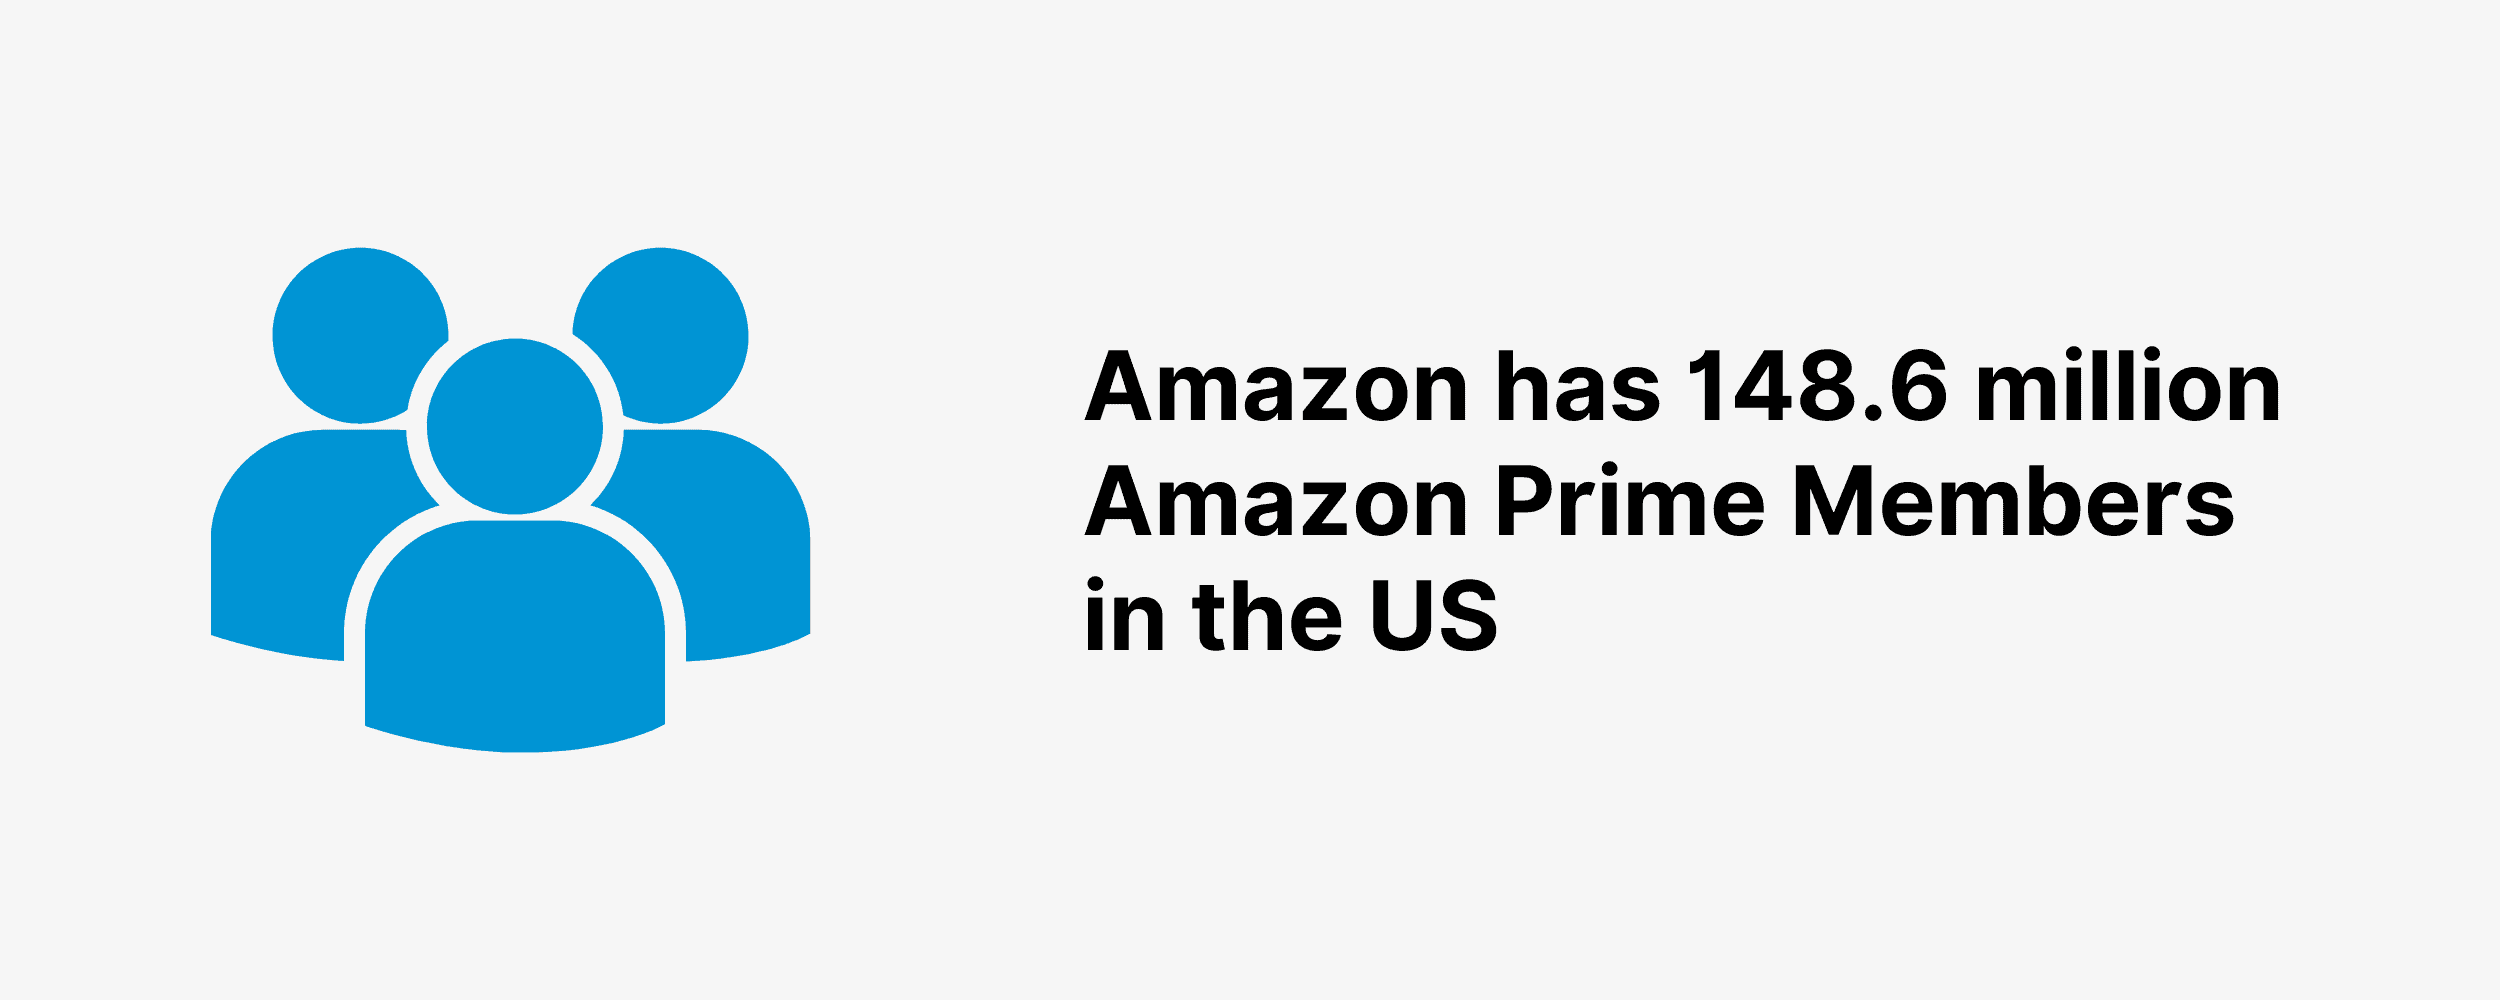 Amazon has 148.6 million Amazon Prime Members in the US